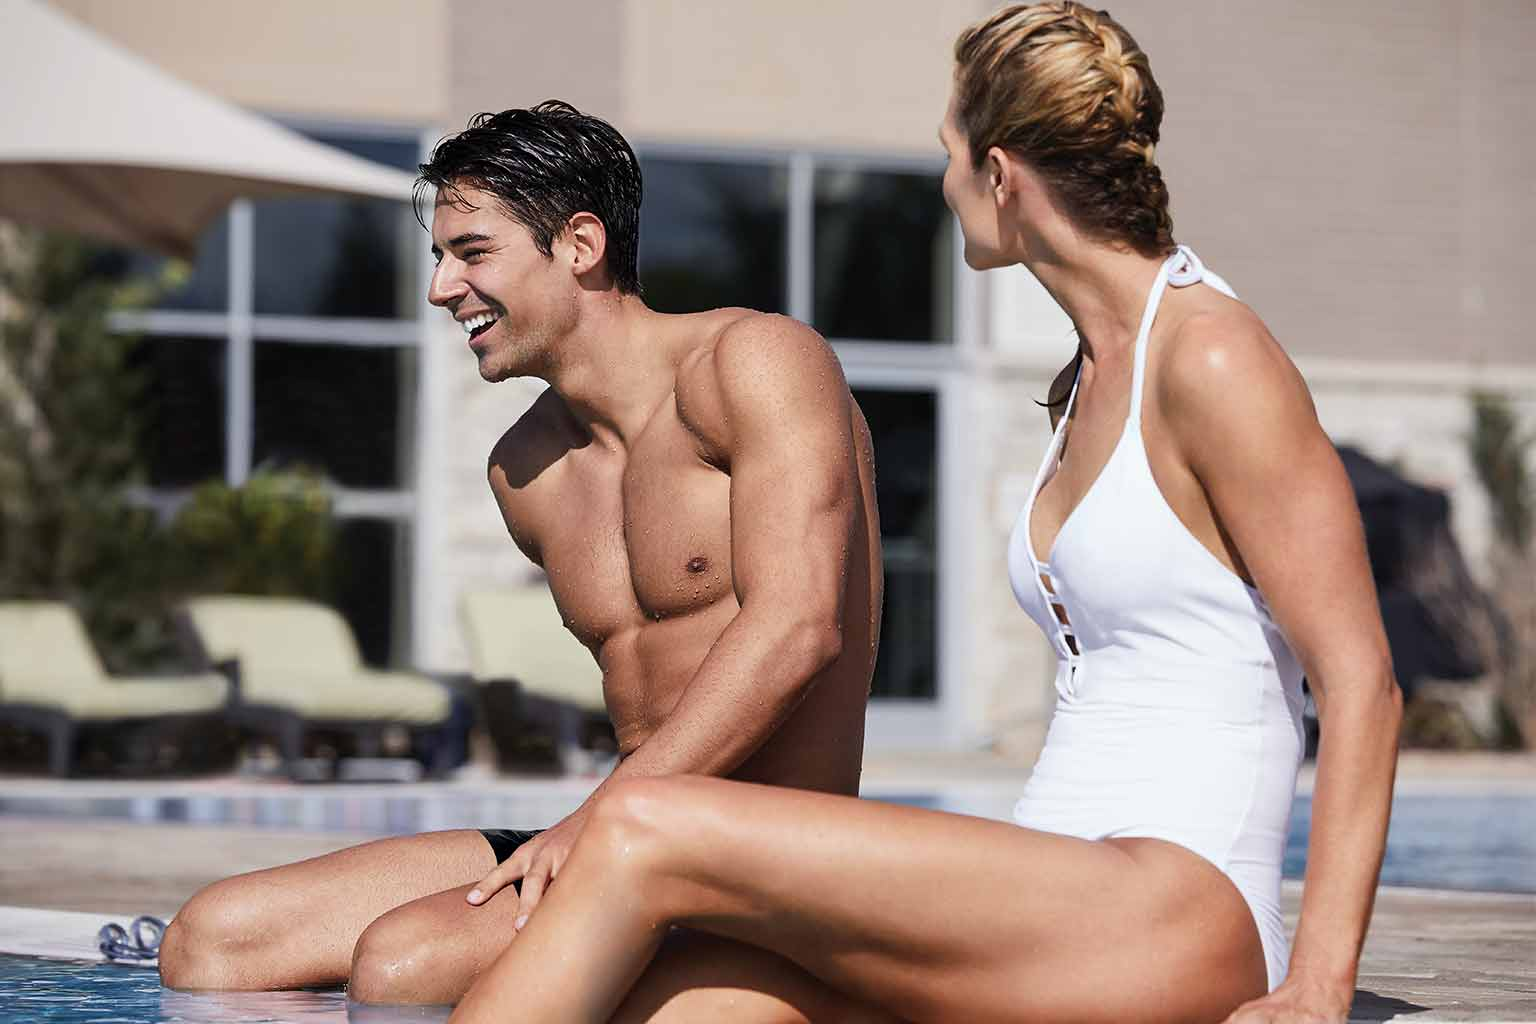 a man and a women laugh while sitting on the edge of an outdoor pool